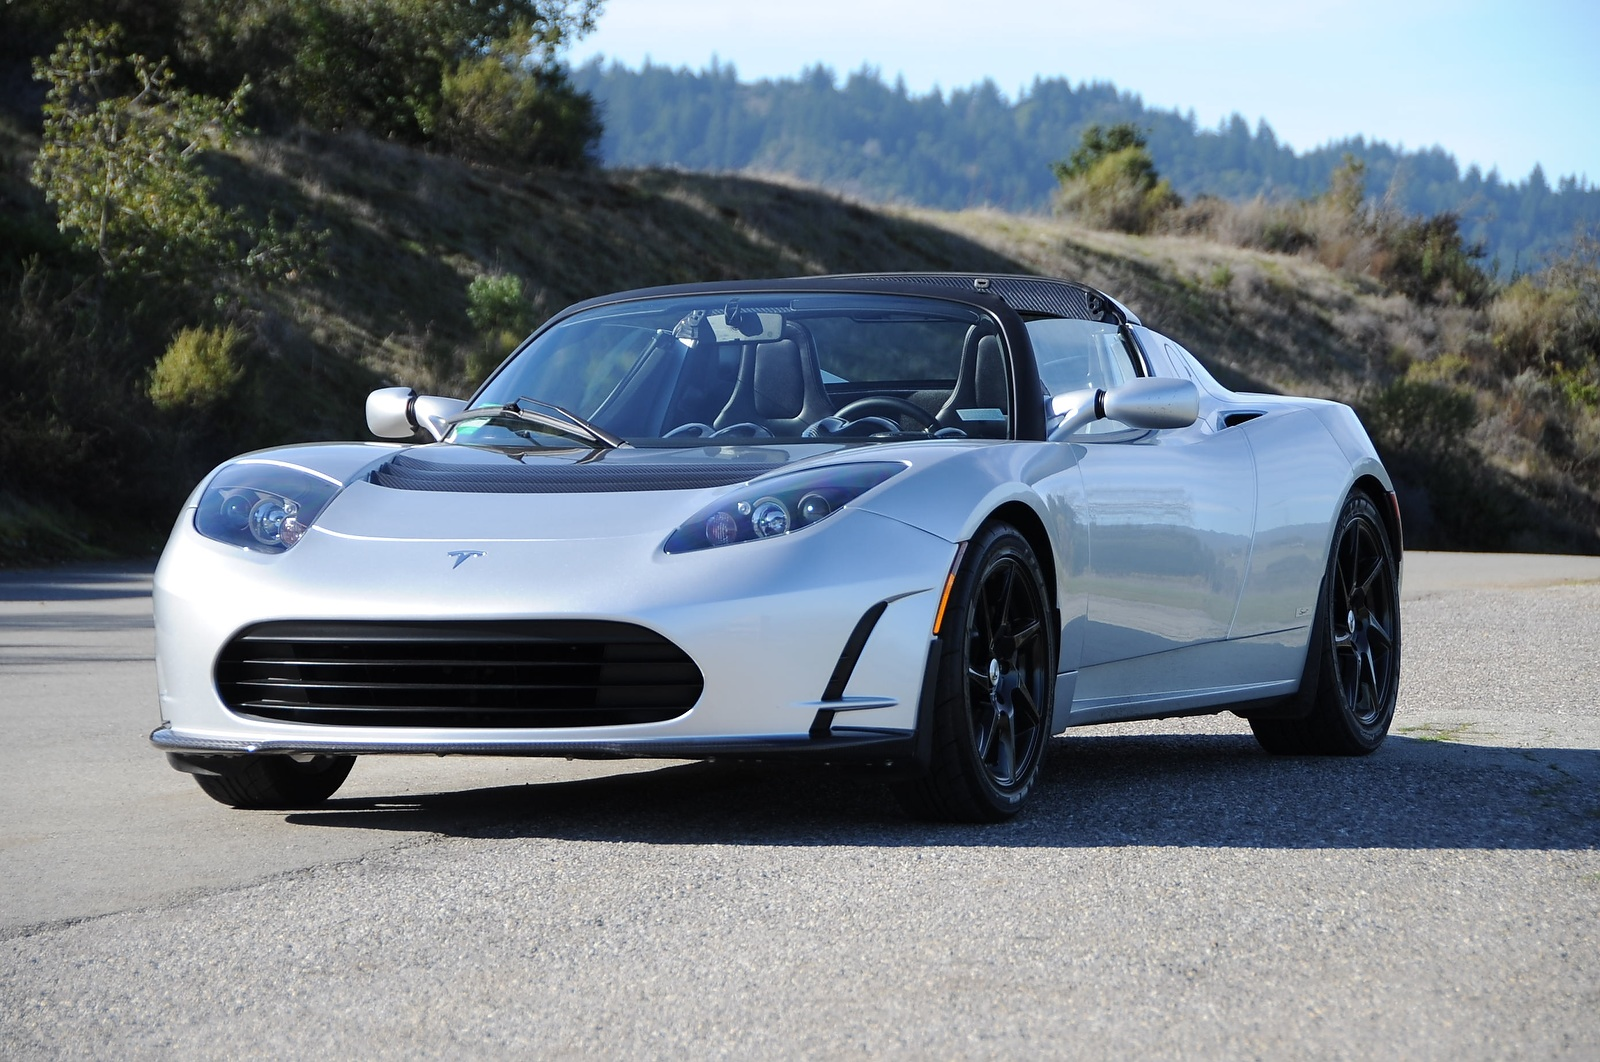 Tesla Roadster 3 0 Update San Jose To La Without Recharging